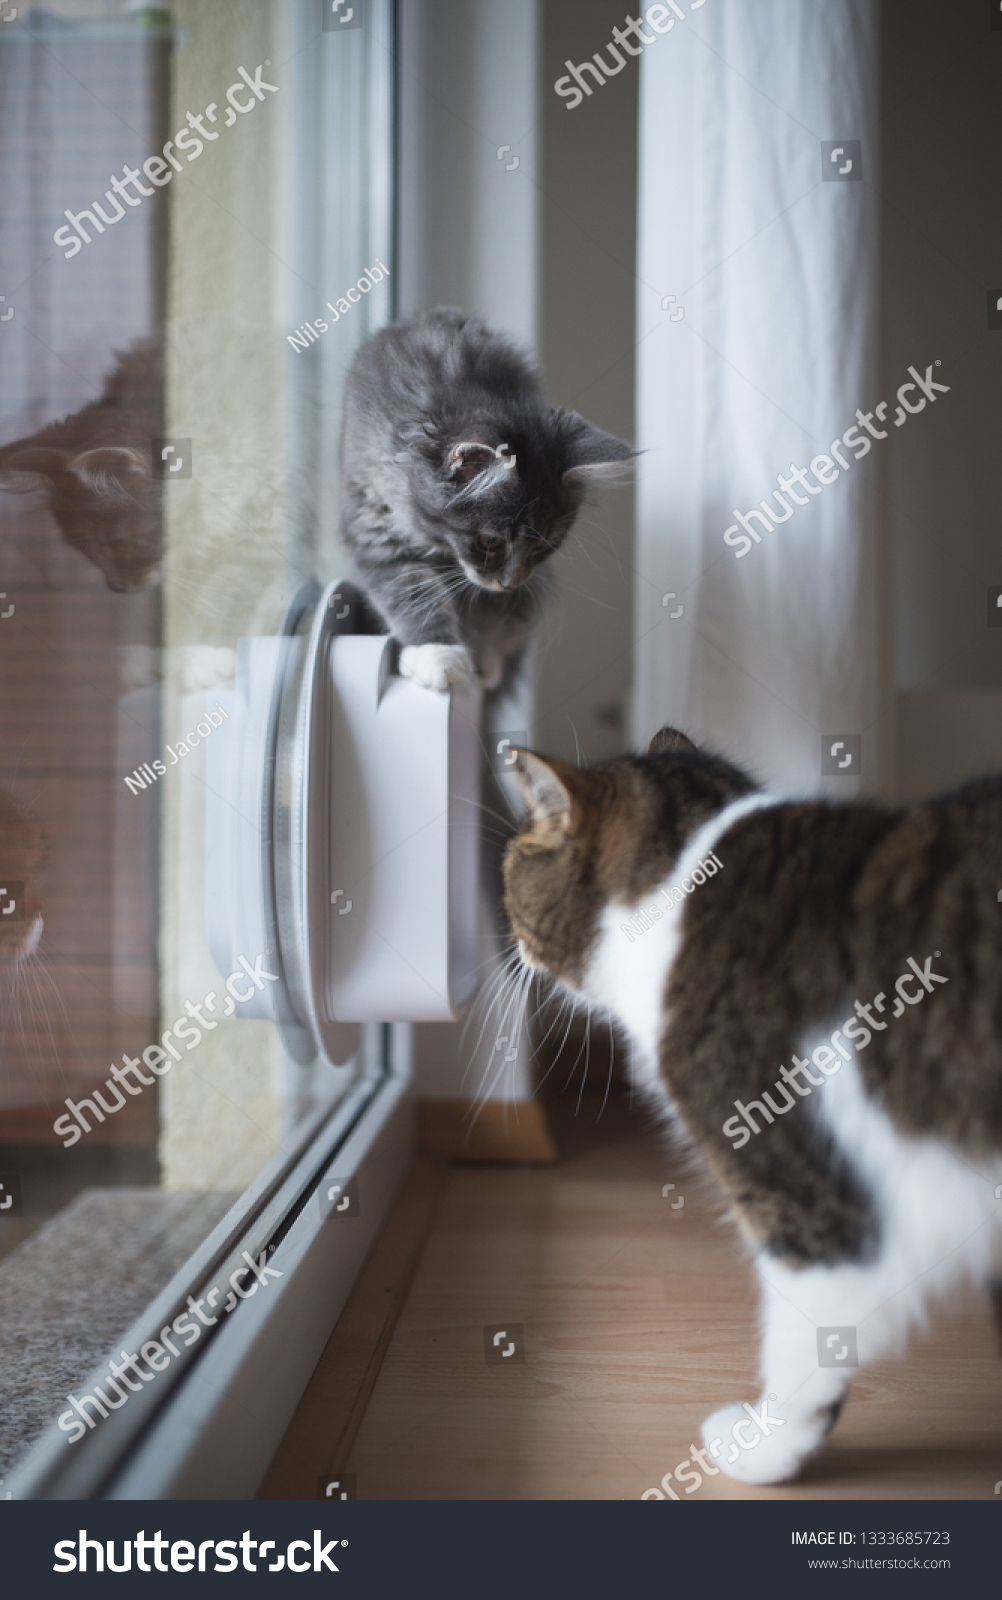 Blue Tabby Maine Coon Kitten Standing Stock Photo Edit Now 1333685723